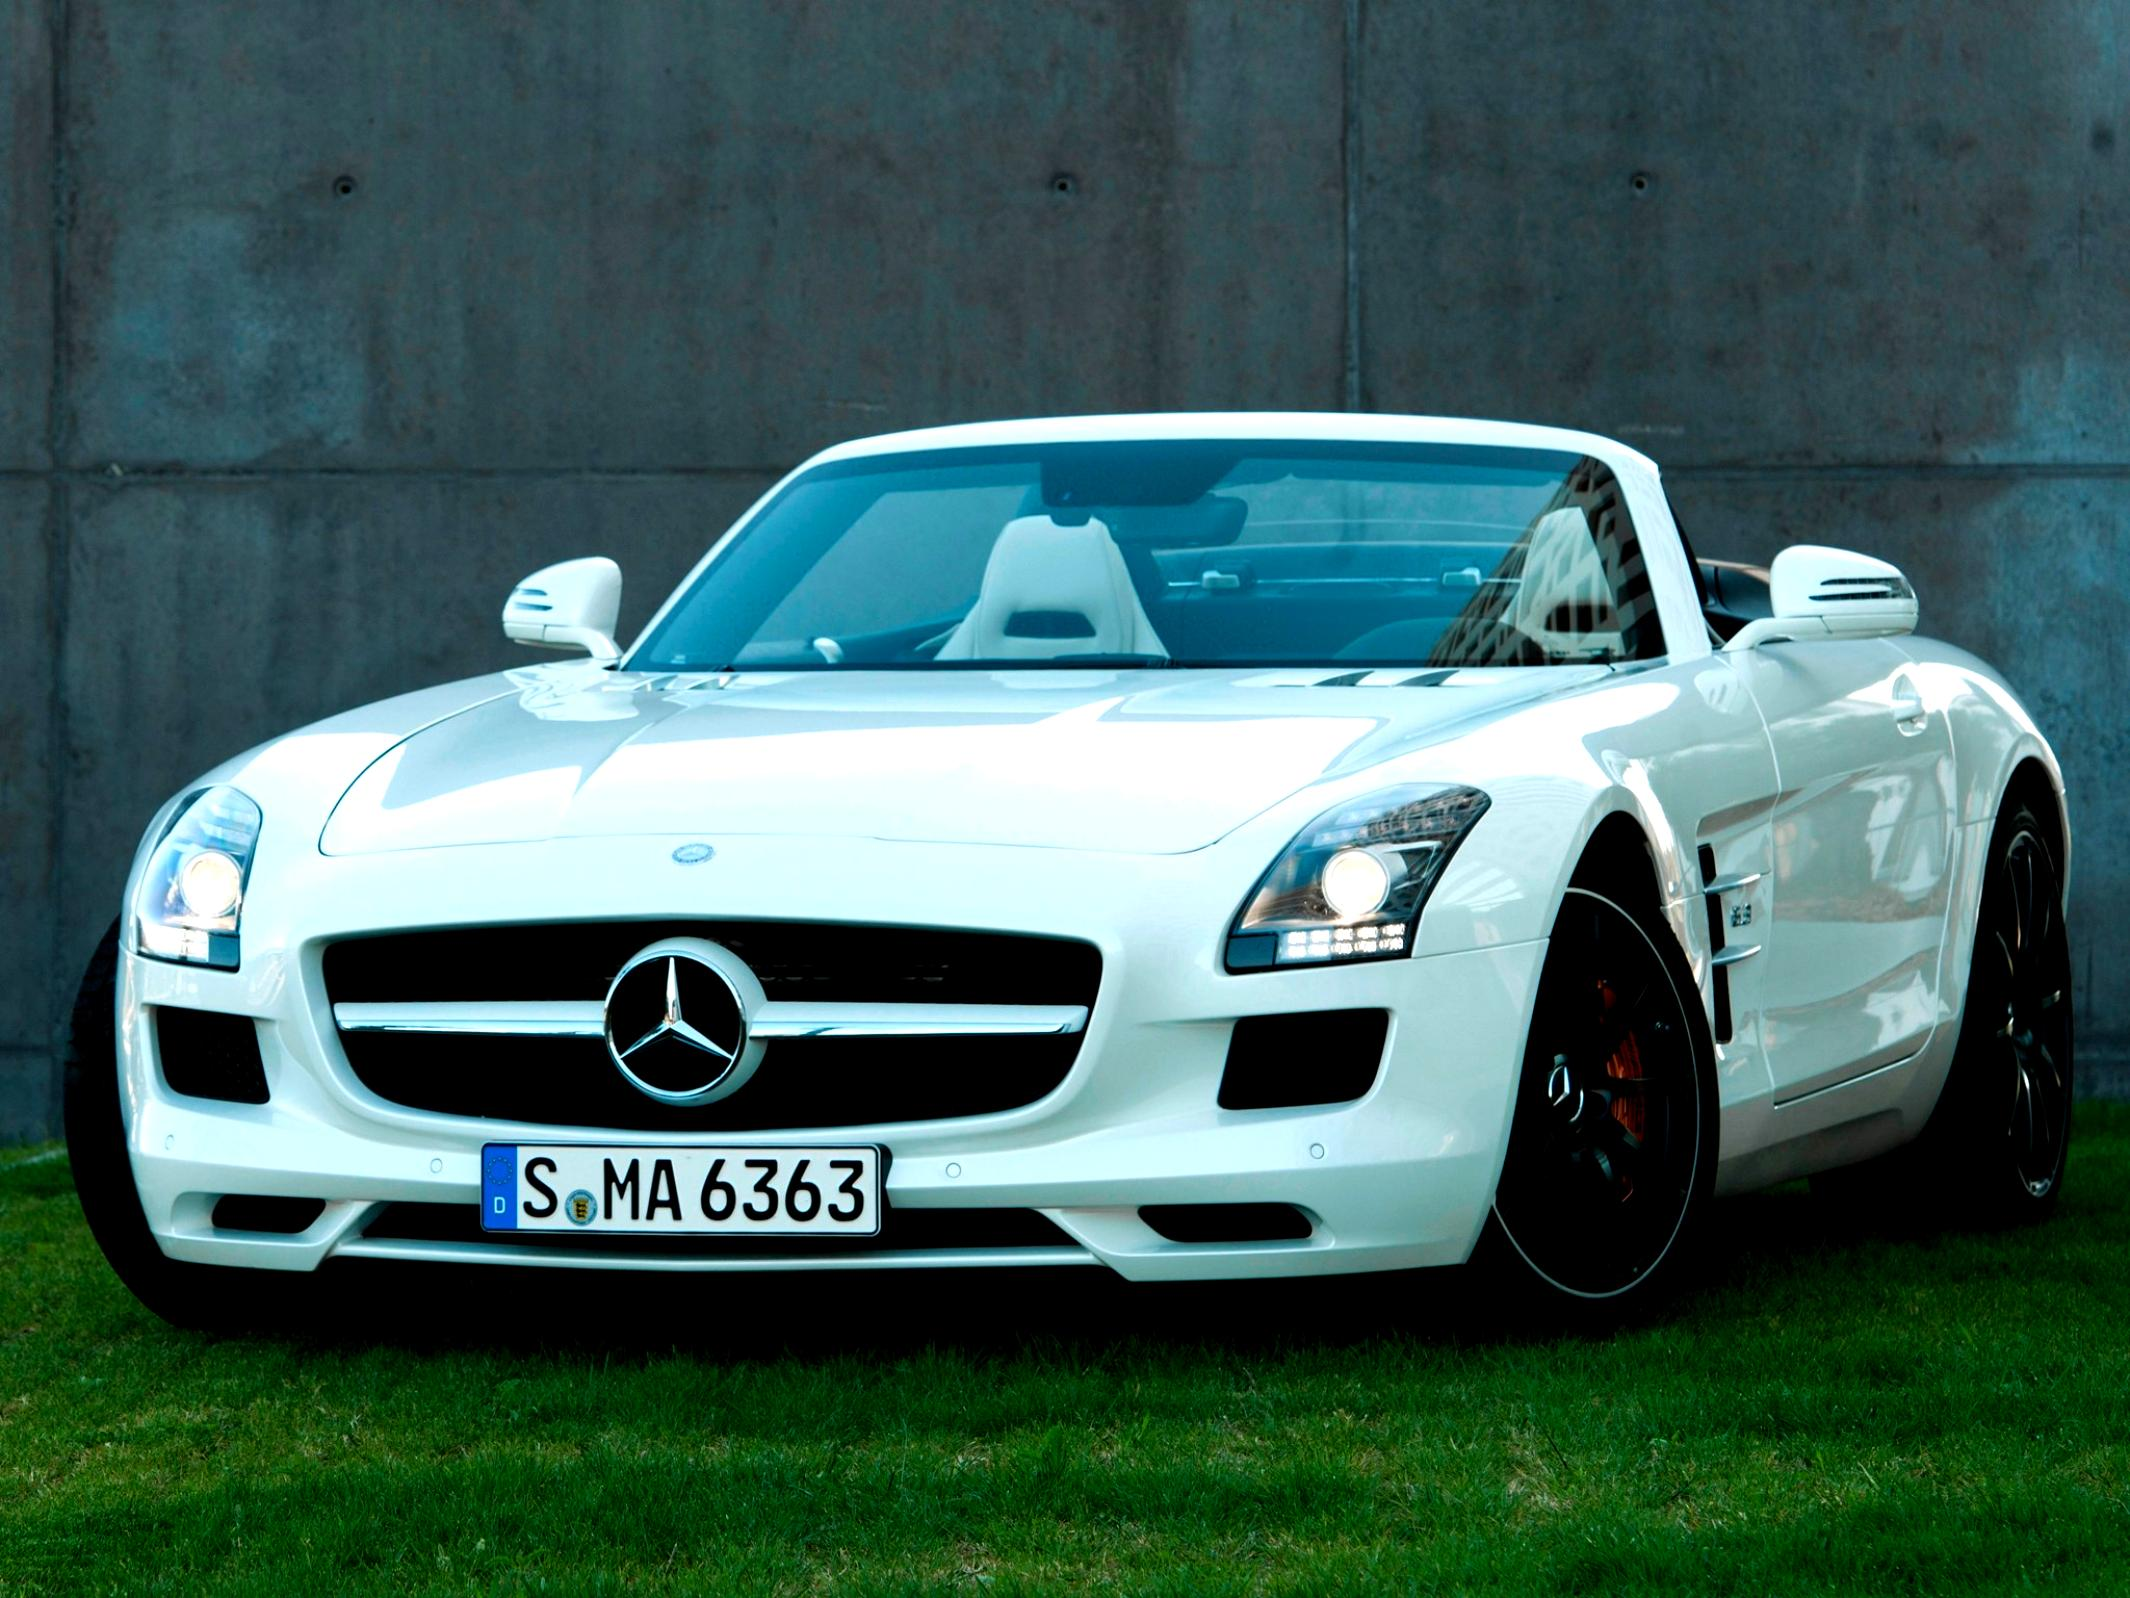 Mercedes Benz SLS AMG Roadster C197 2011 #38